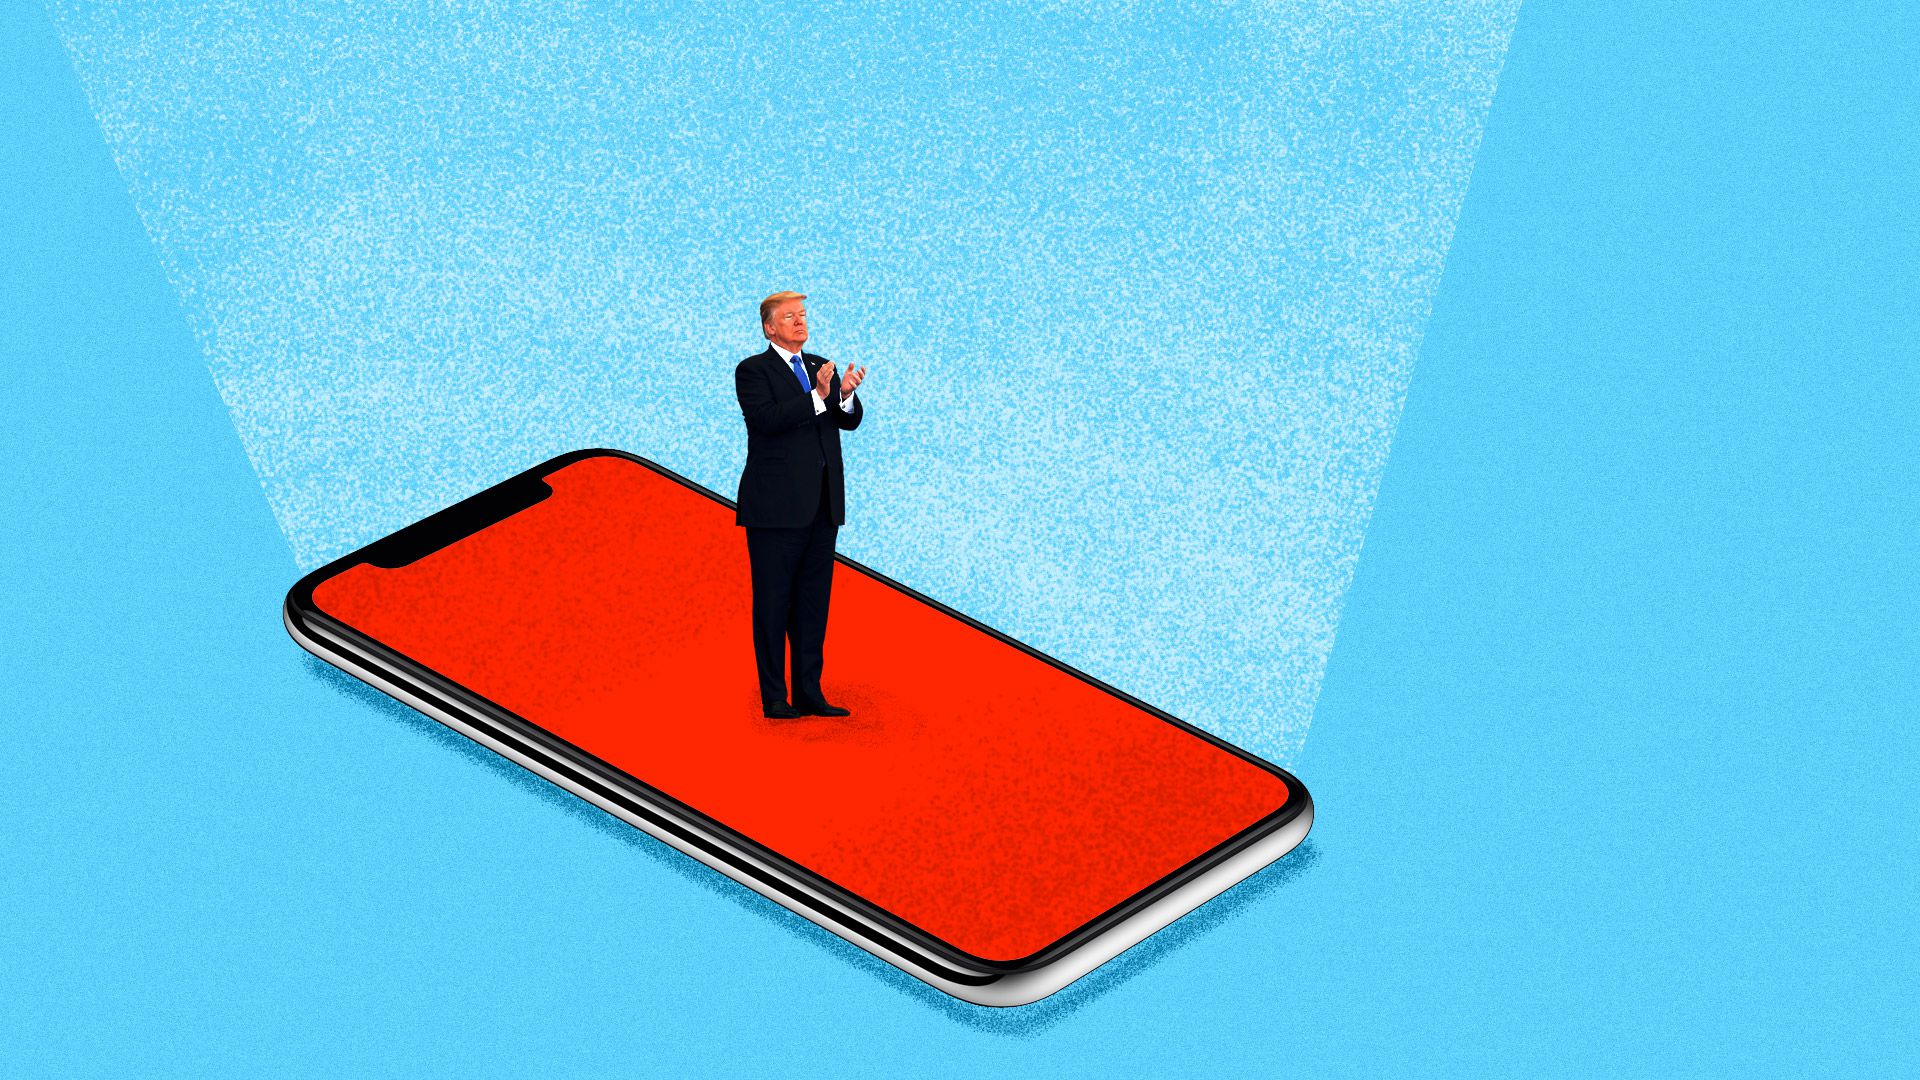 Illustration of President Trump speaking while standing on a red smartphone screen